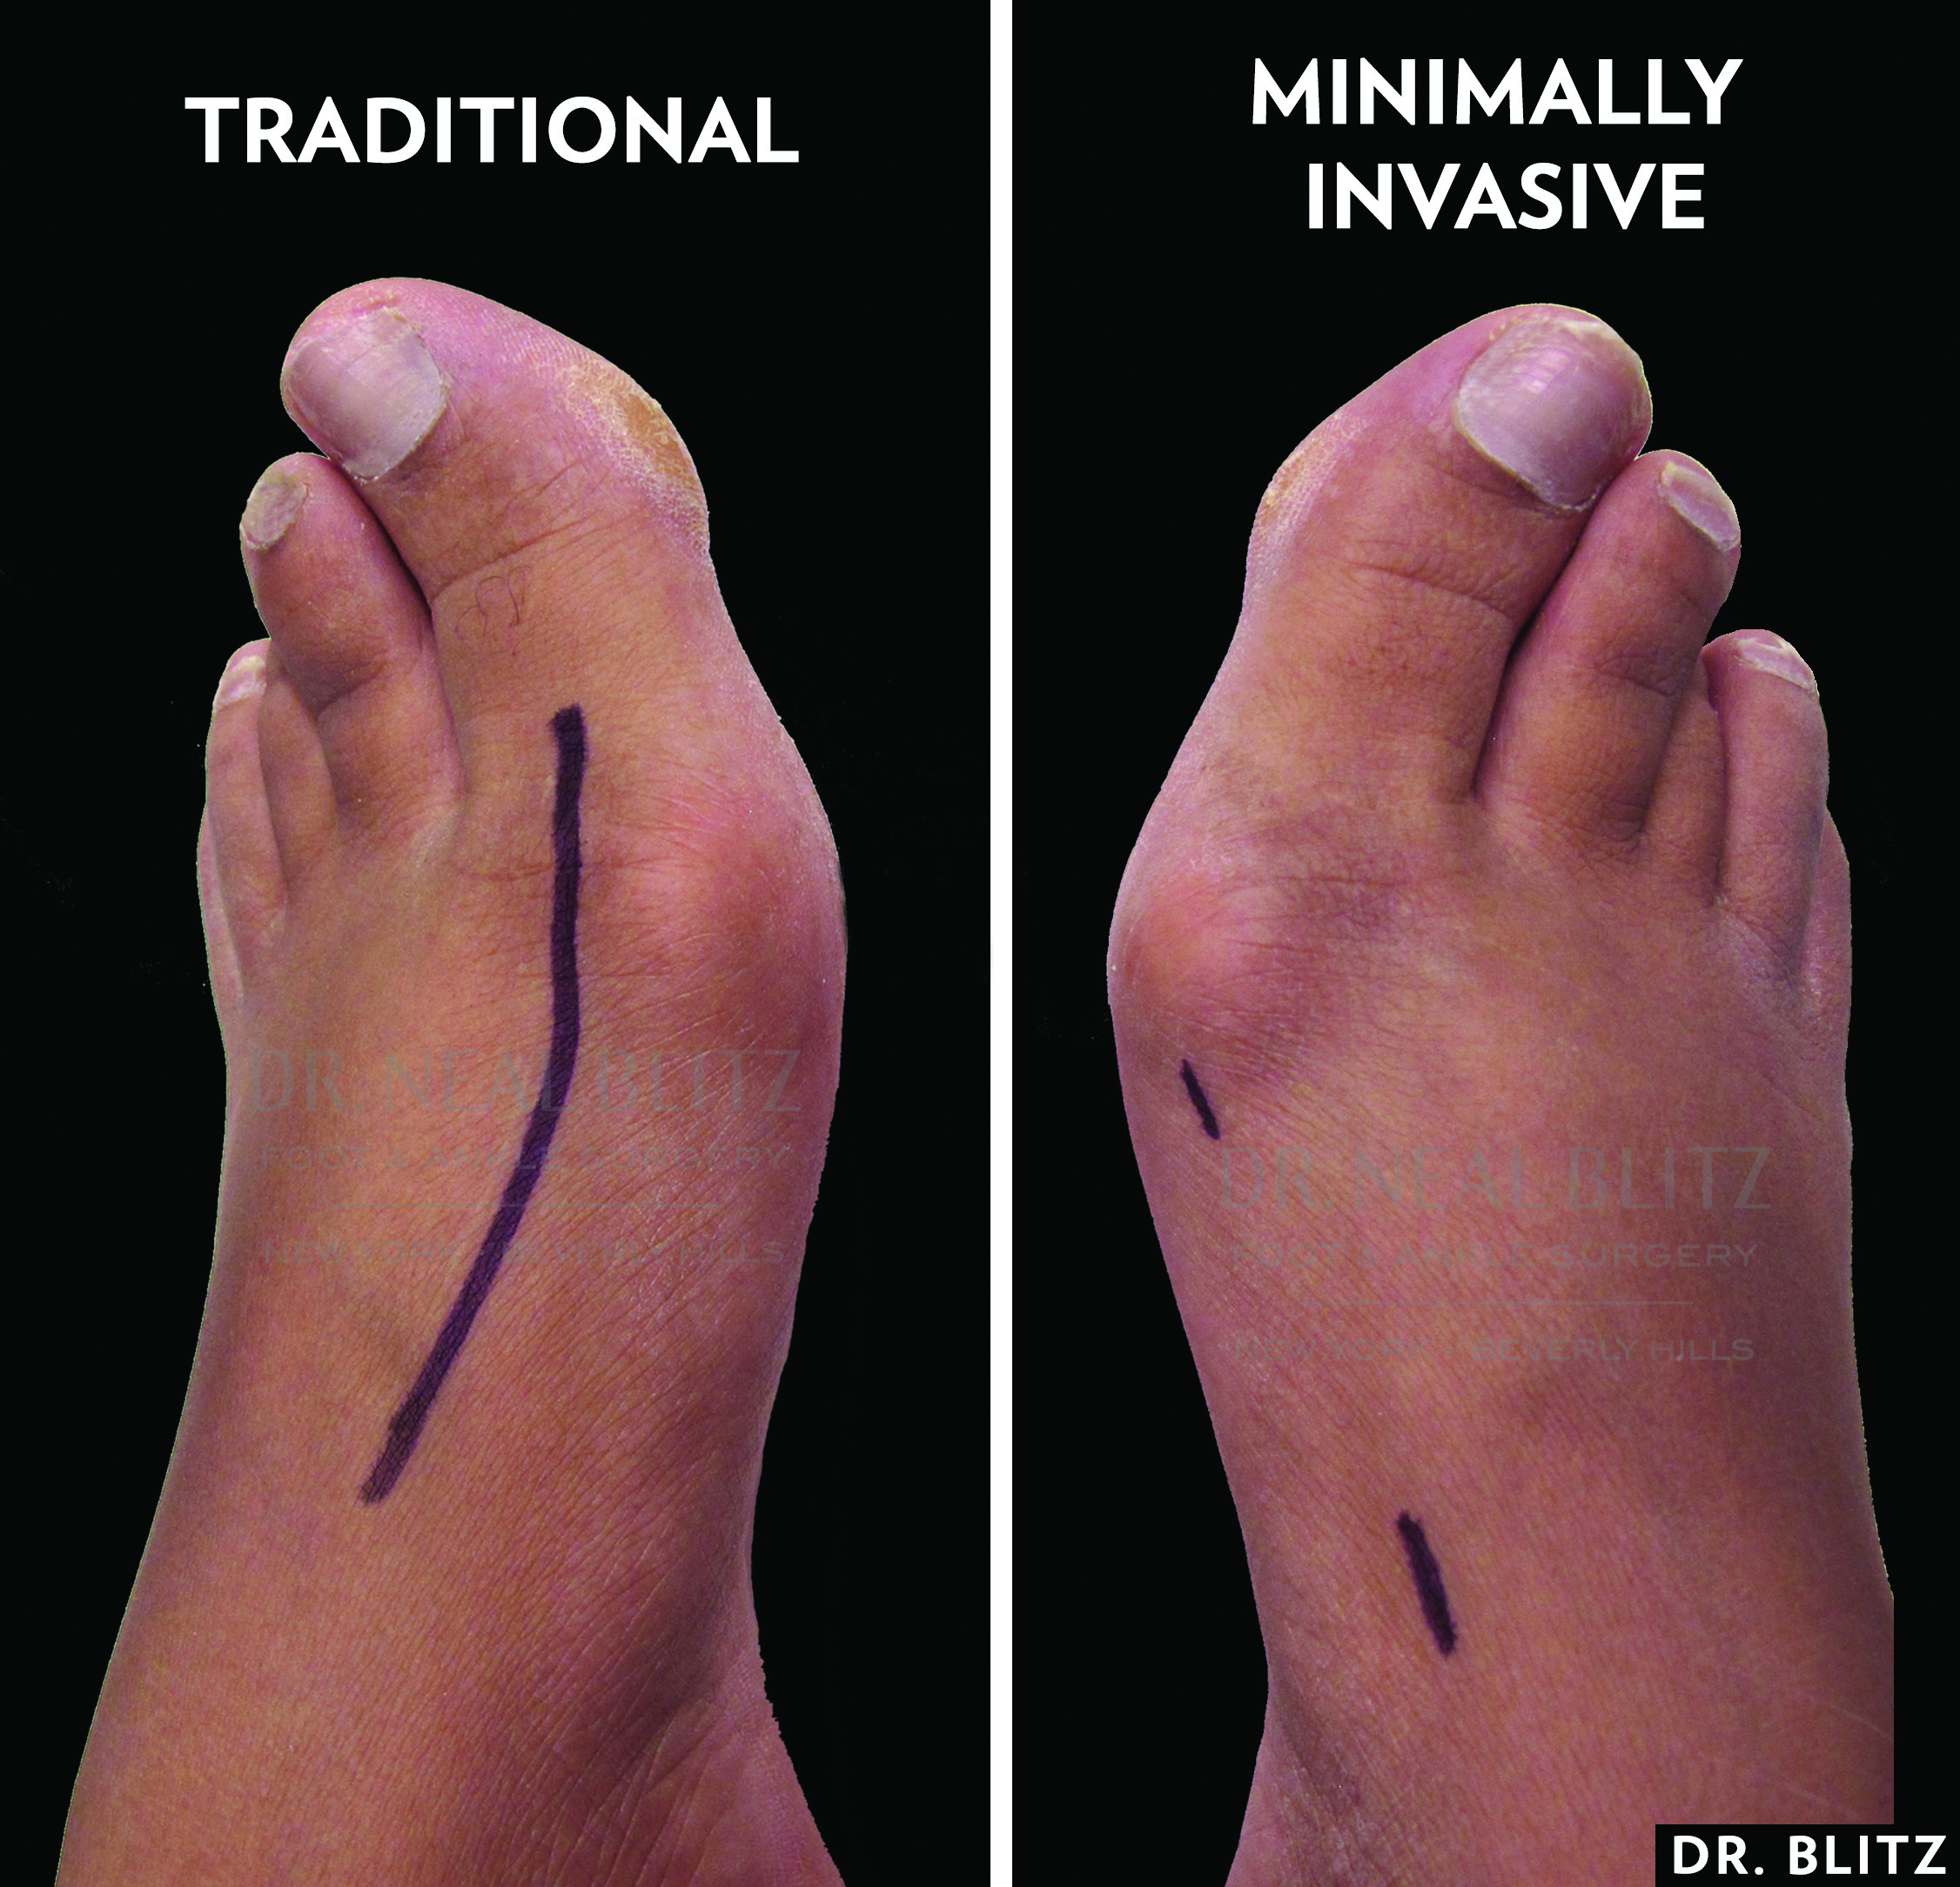 One can perform minimally invasive bunion surgery through a series of tiny incisions rather than one long incision as with a traditional bunionectomy.